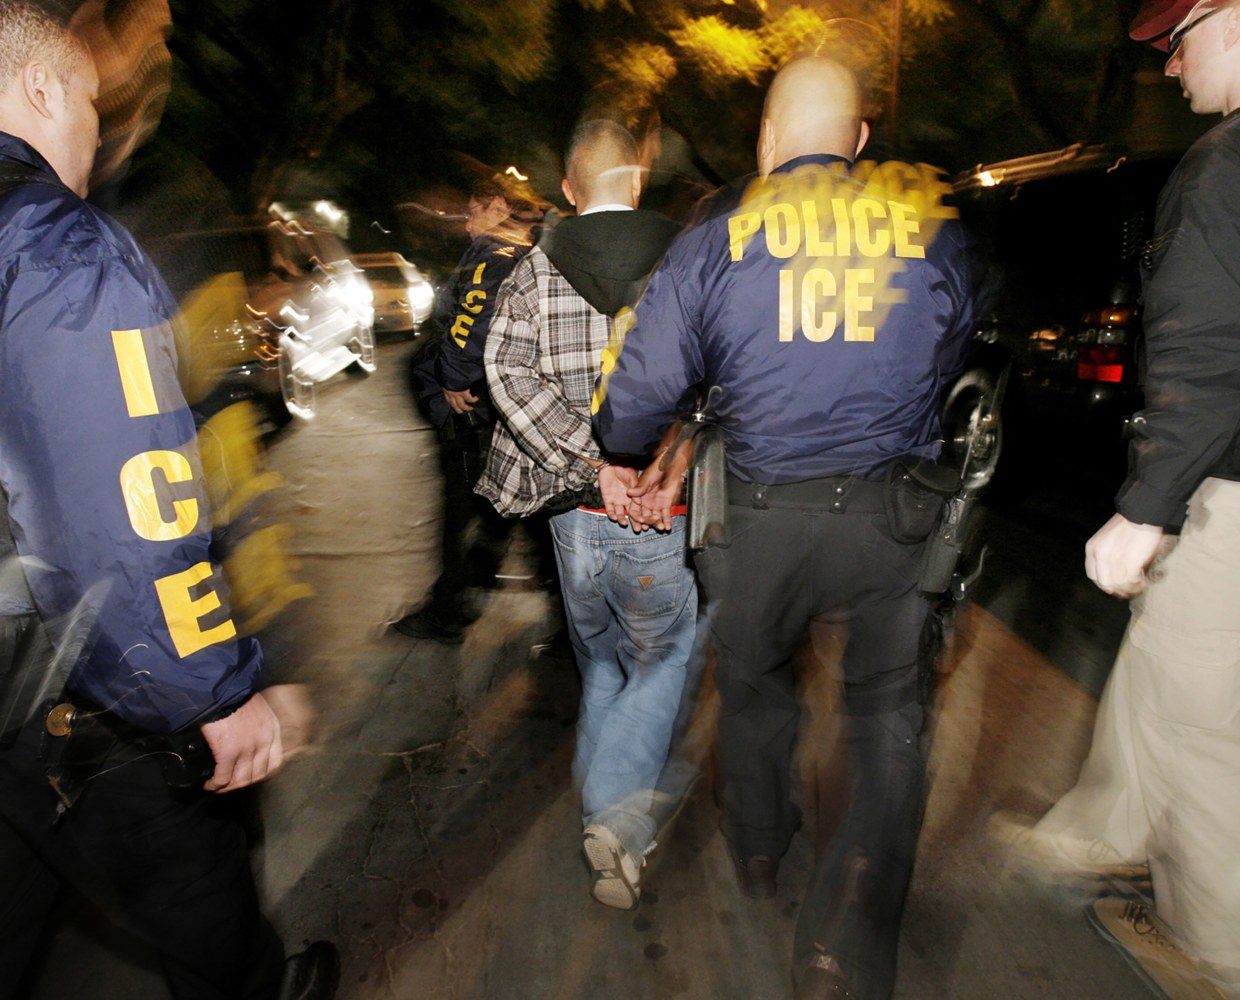 In nationwide immigration sweep, ICE arrests 107 in Philly